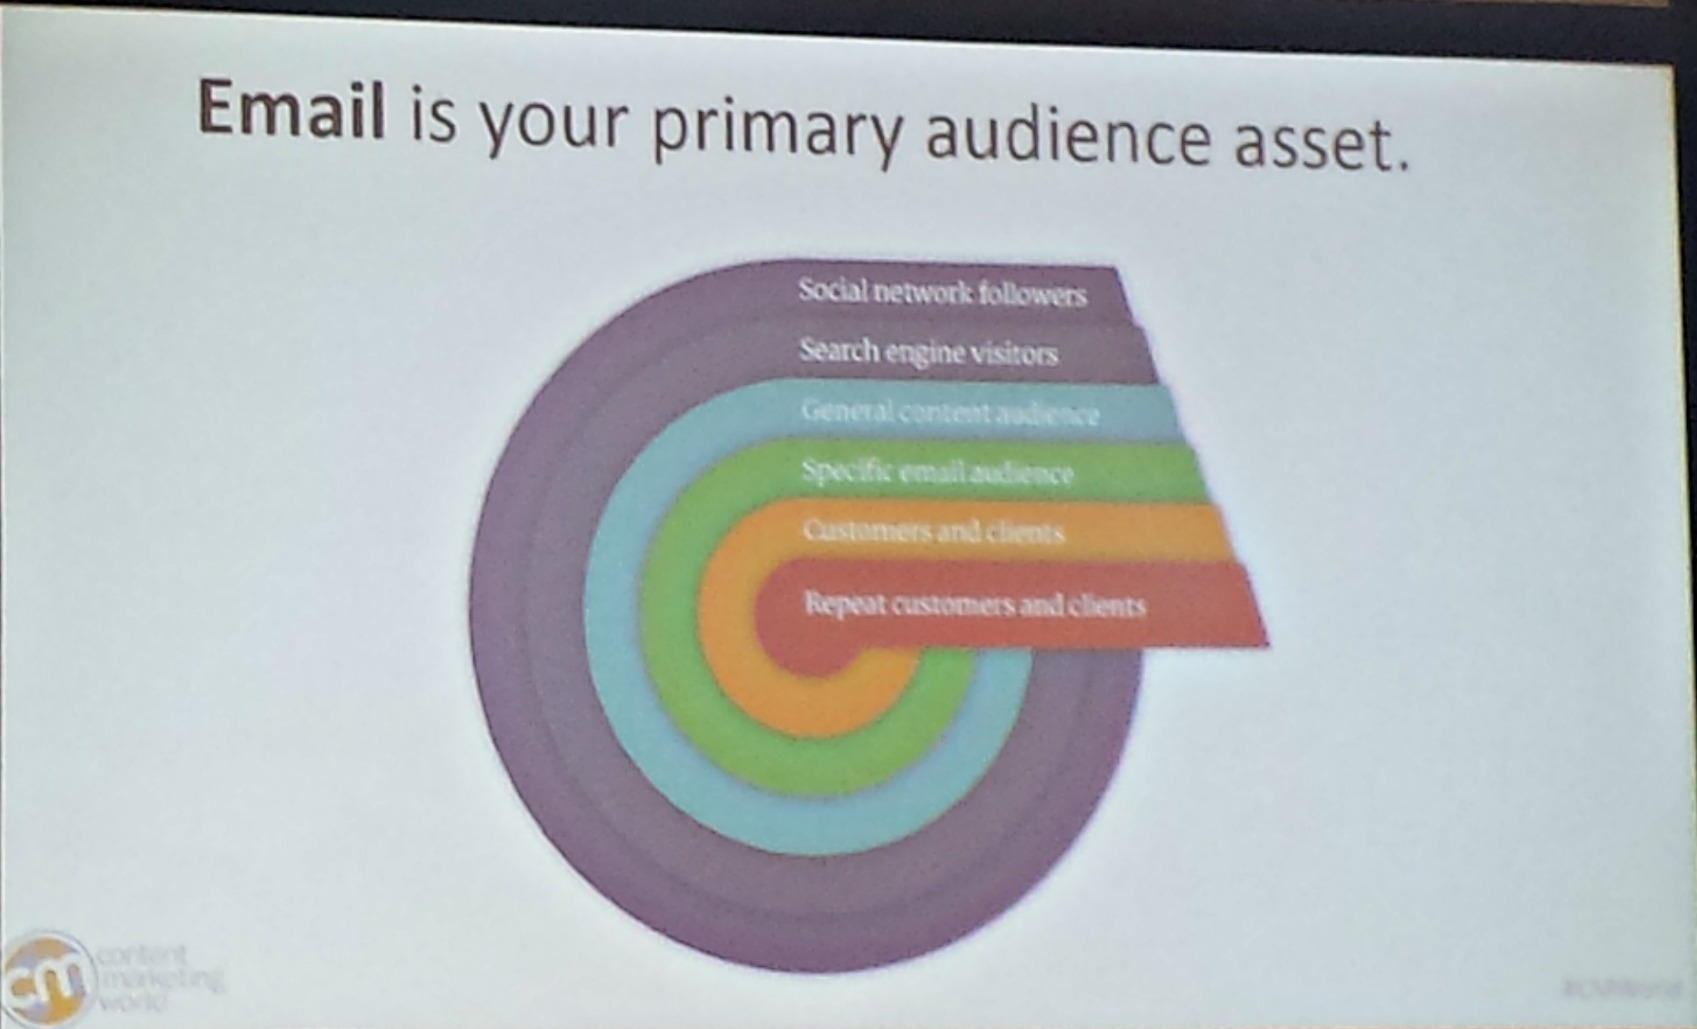 Email is your primary audience asset